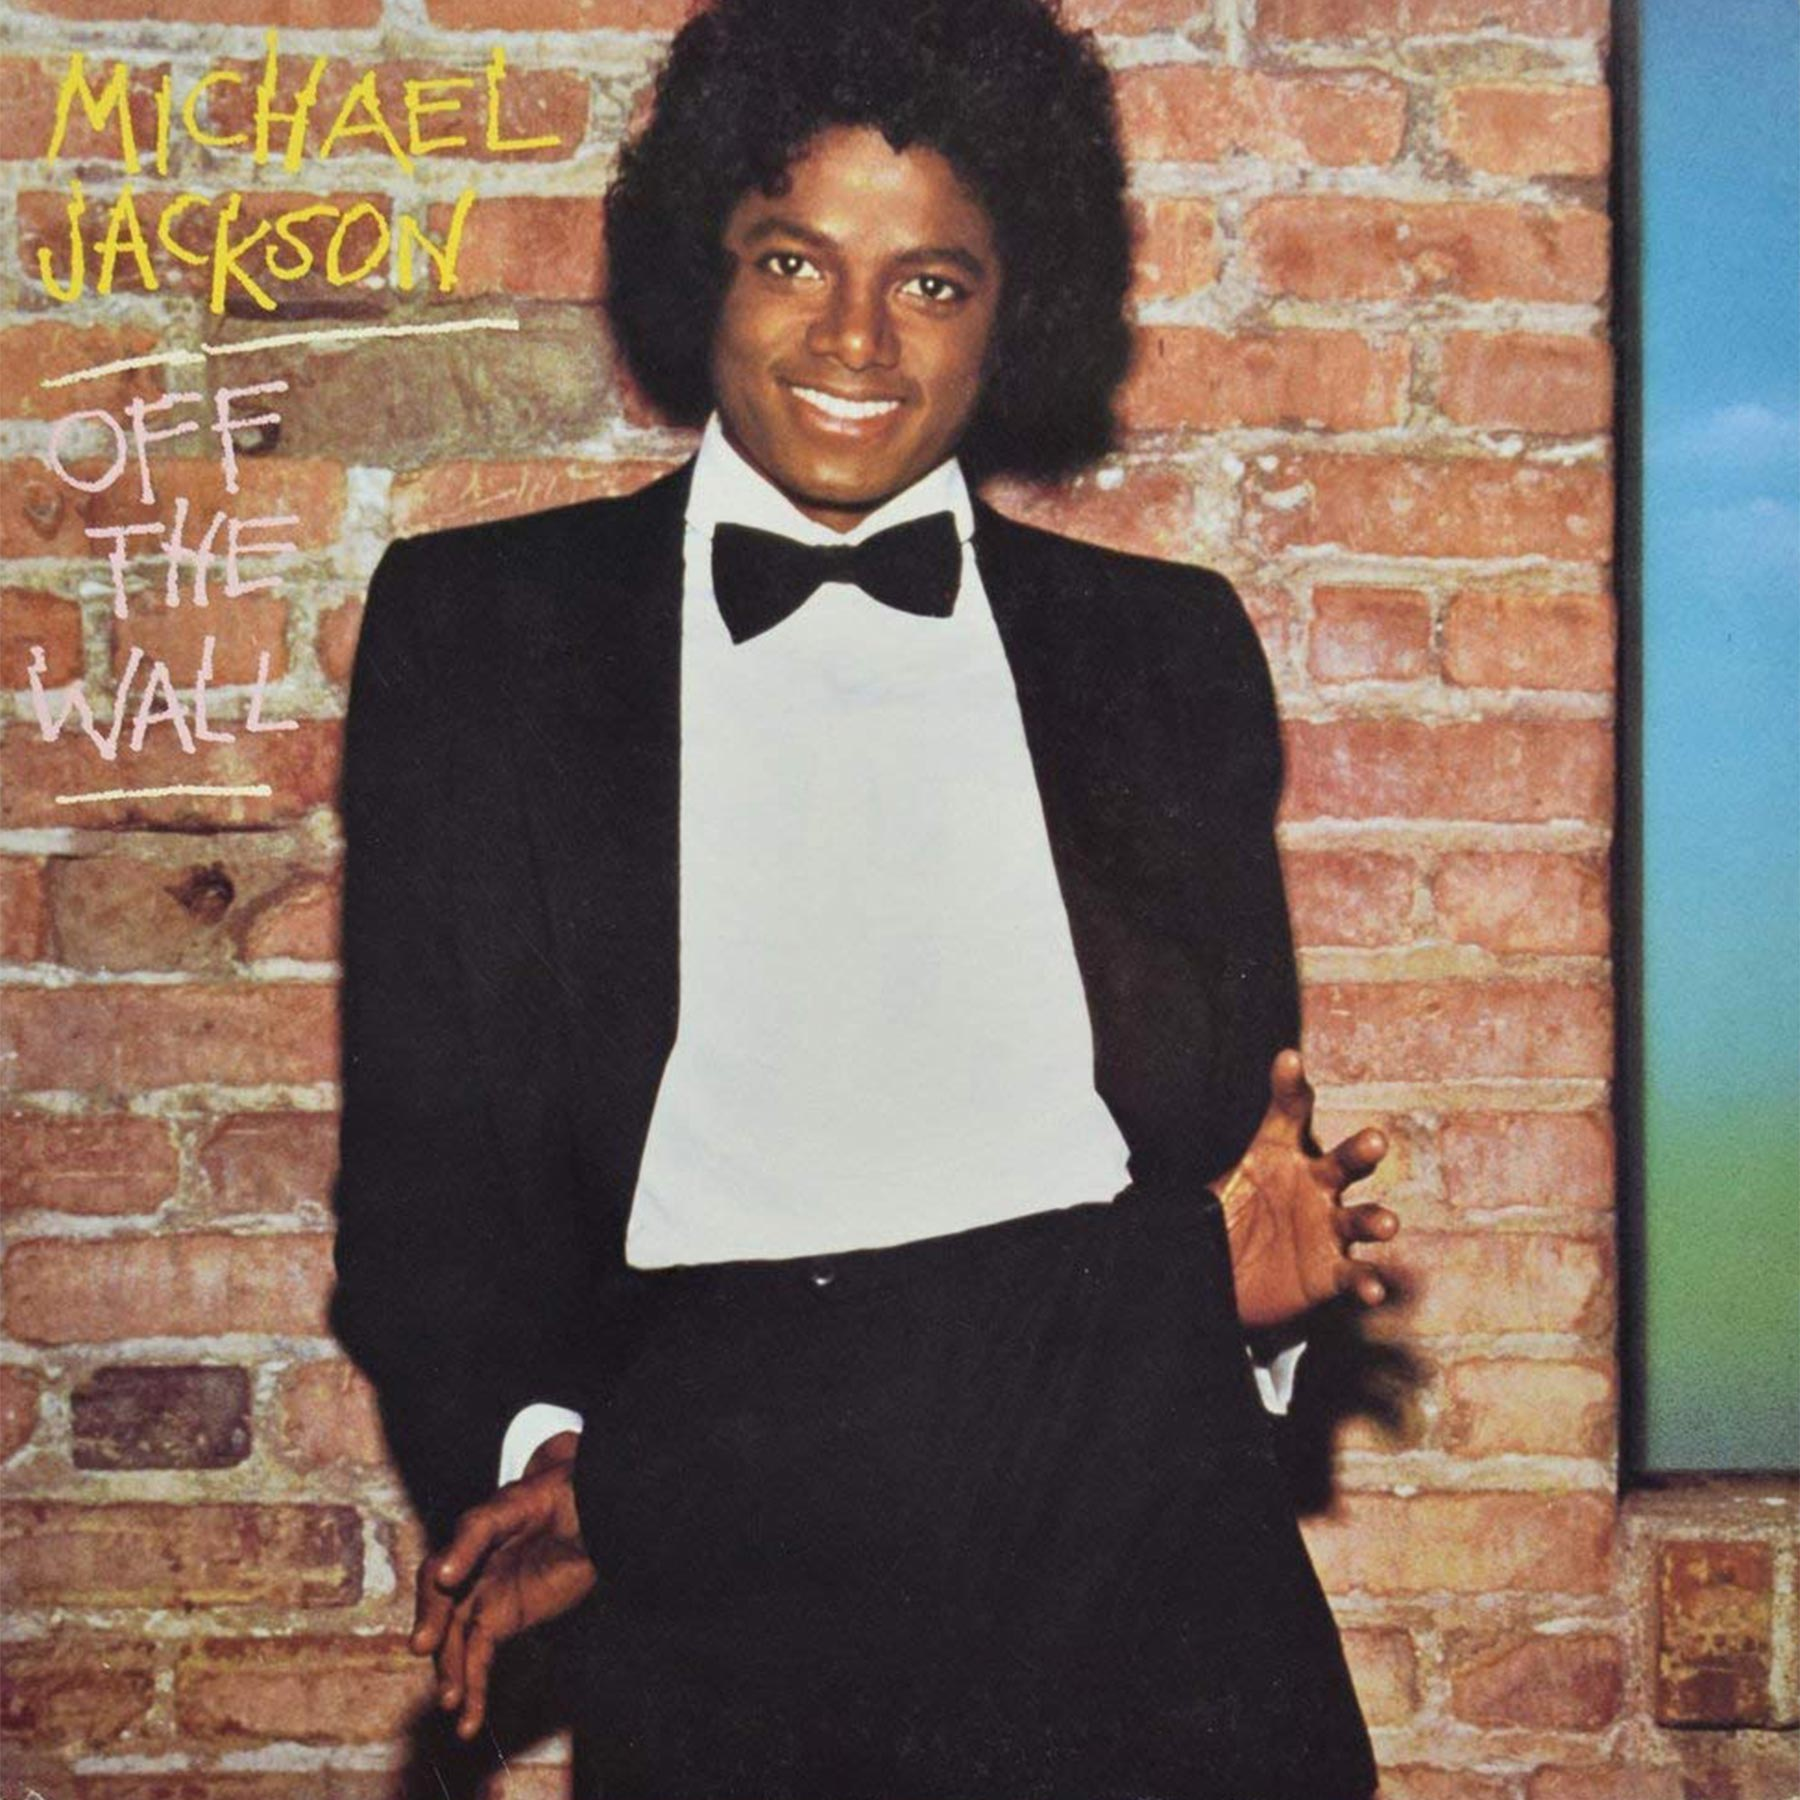 Off the Wall (1979) by Michael Jackson